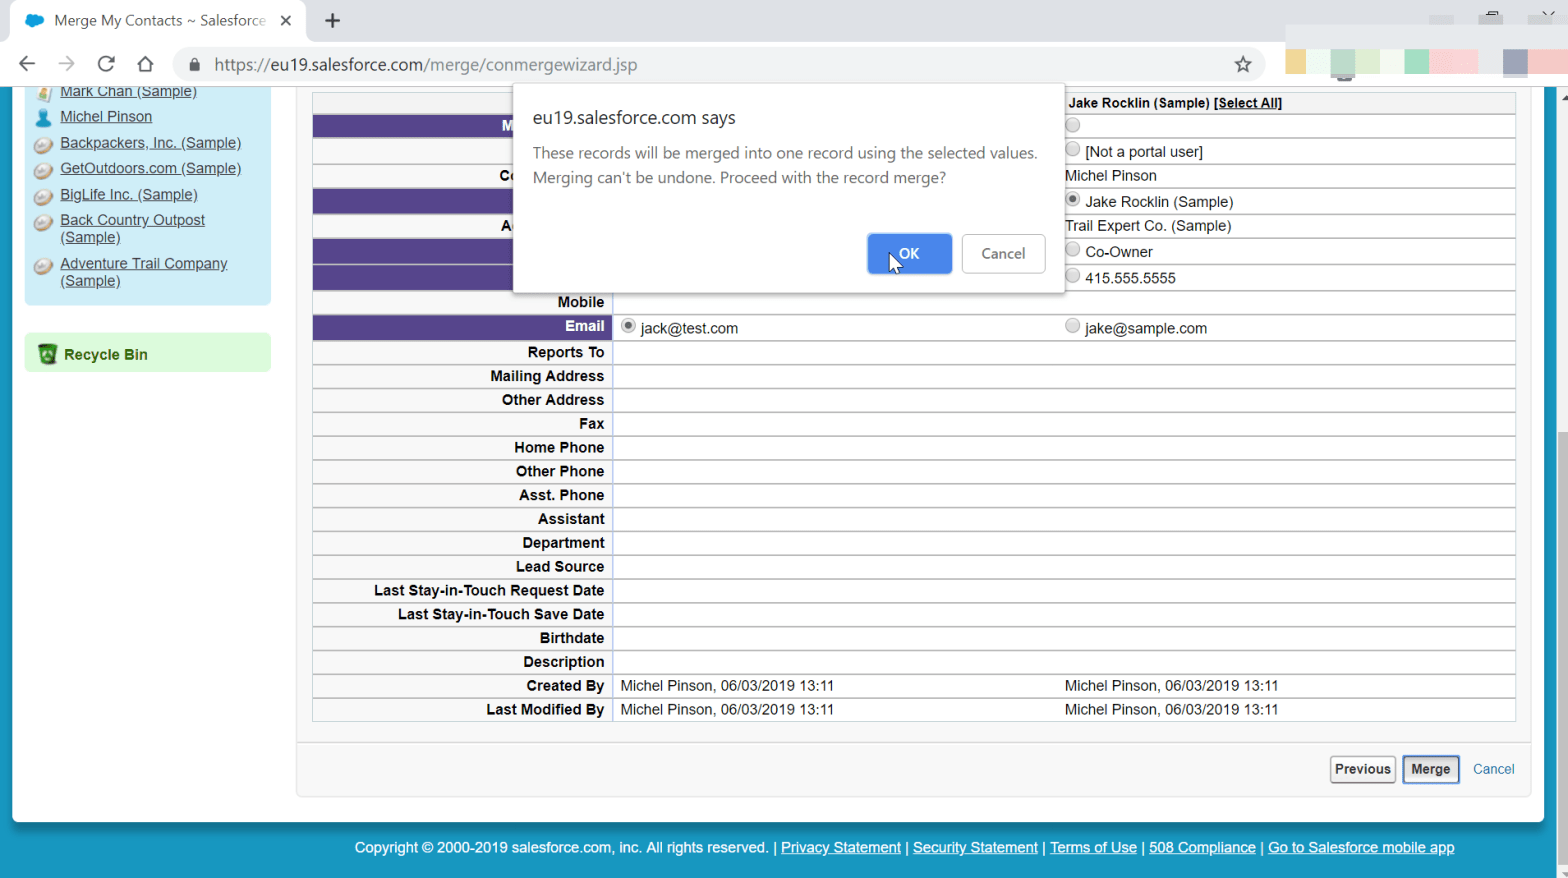 How to merge contacts in SalesForce Classic?